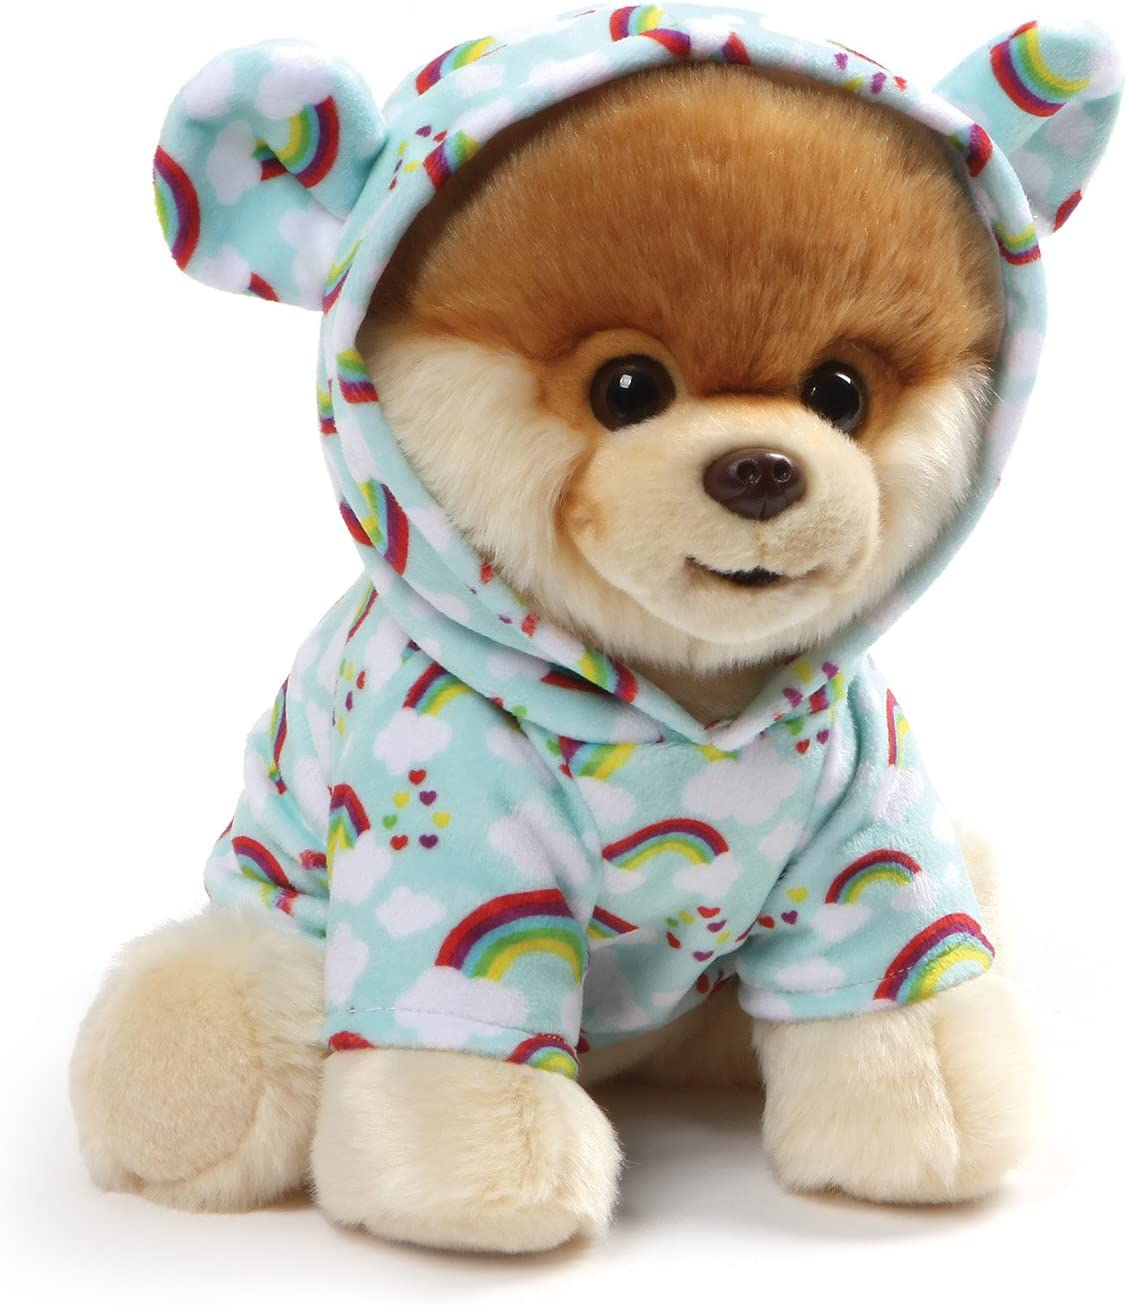 Amazon Com Gund World S Cutest Dog Boo Plush Rainbow Outfit Stuffed Animal Plush 9 Toys Games